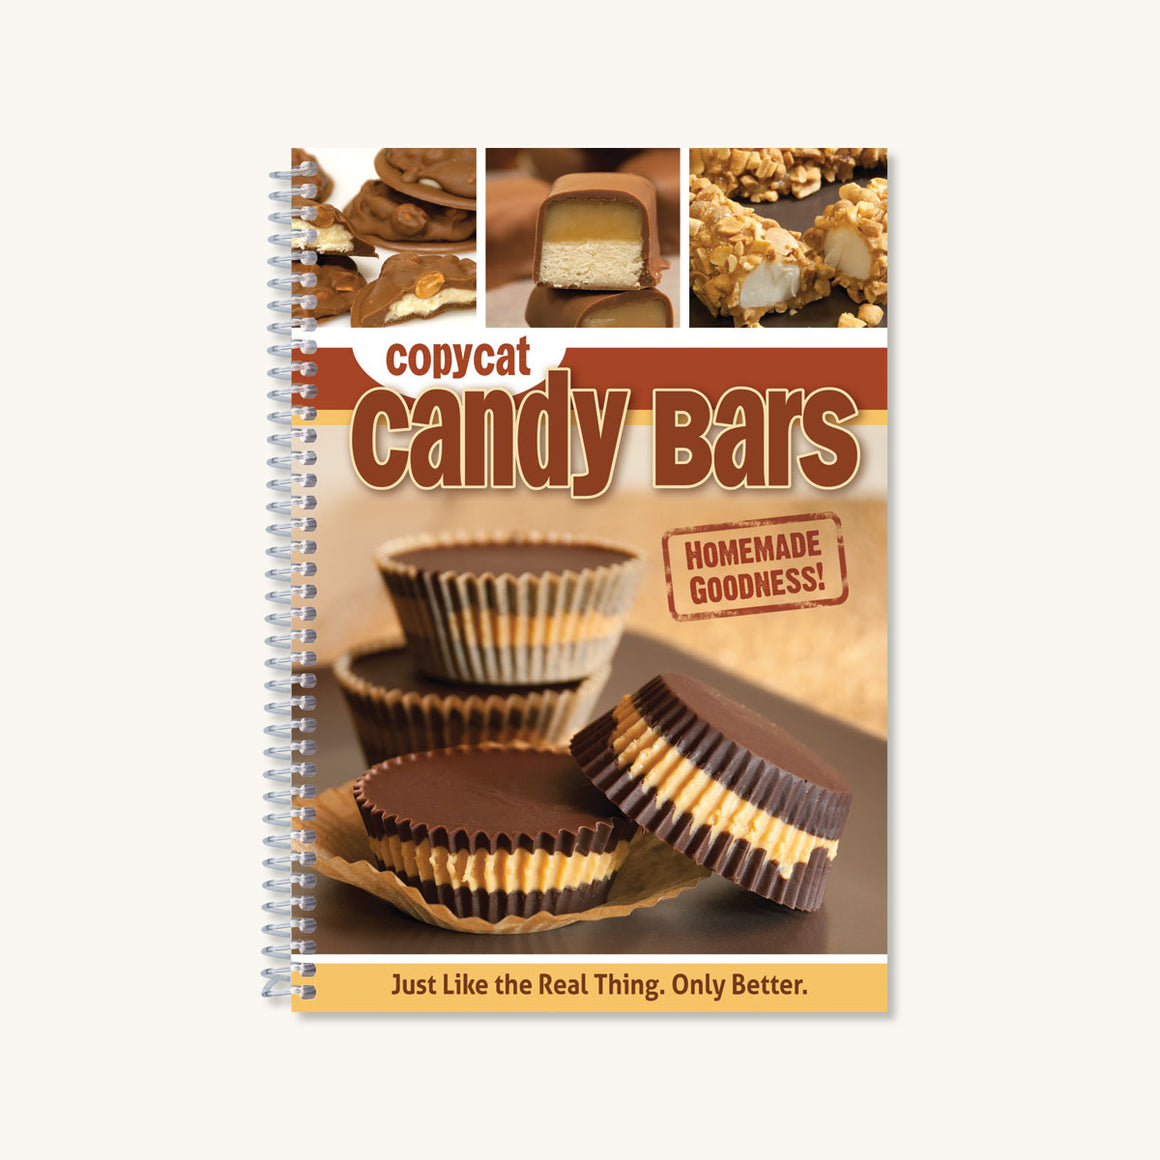 Copycat Candy Bars Cookbook